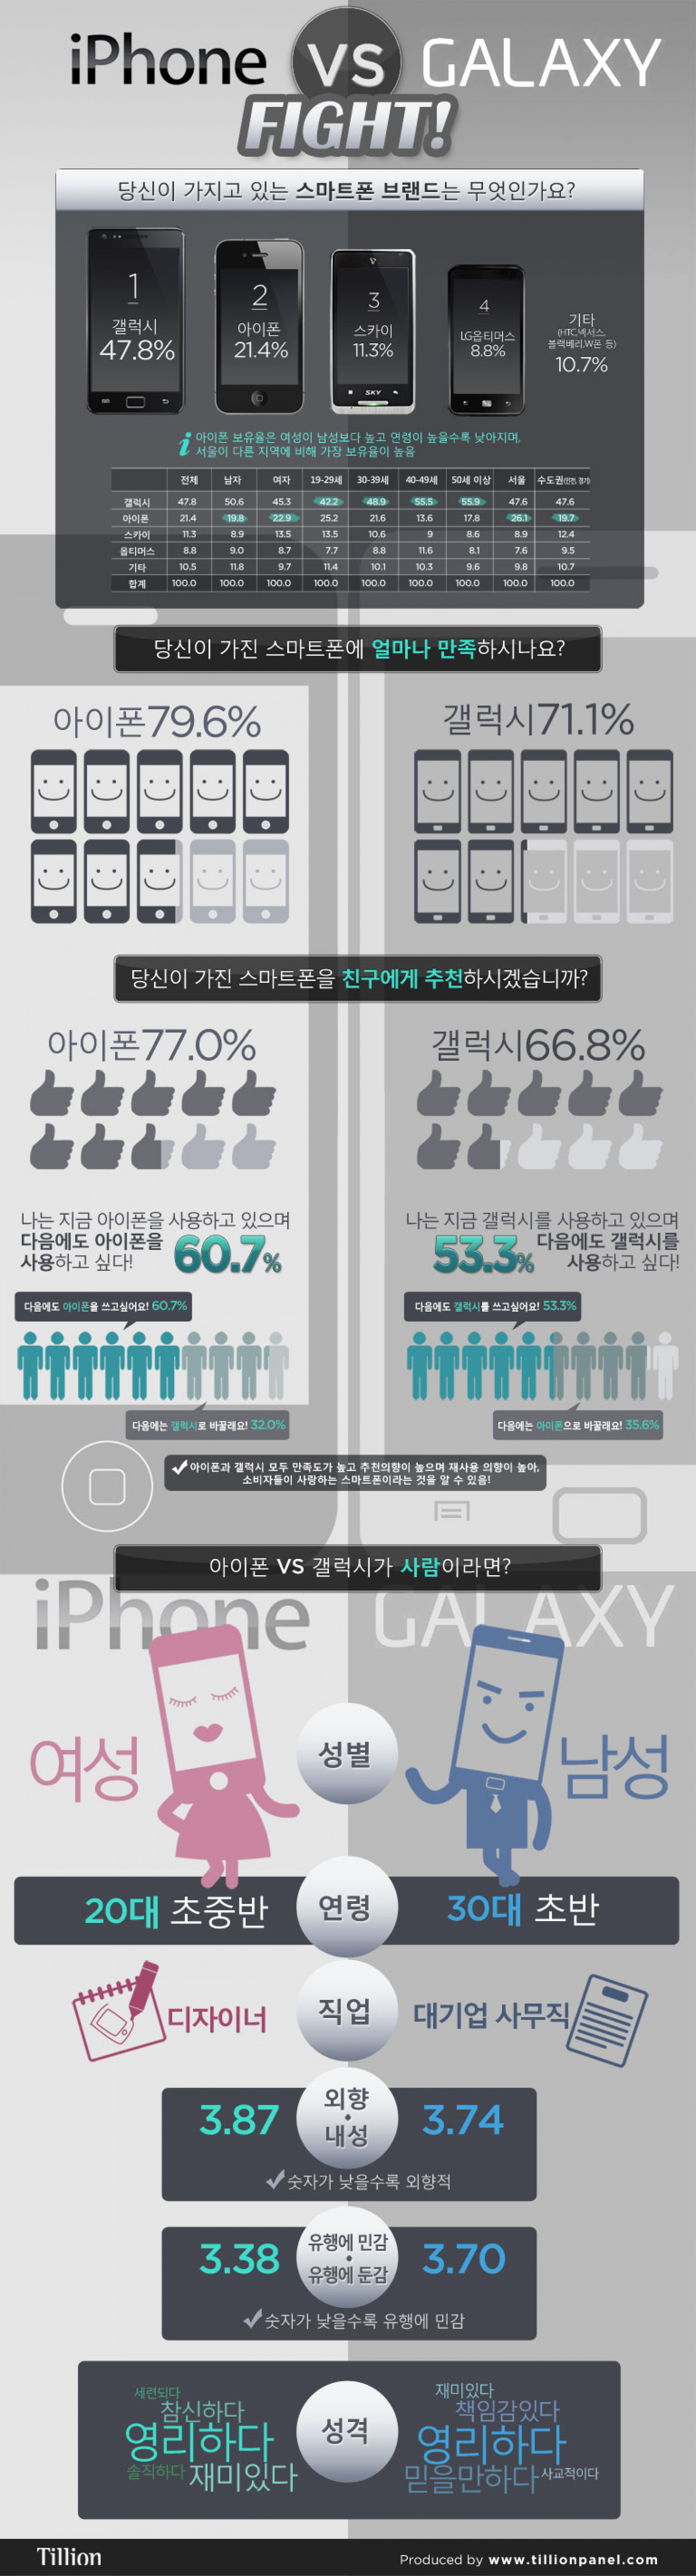 iPhone VS. GALAXY Fight!  Infographic